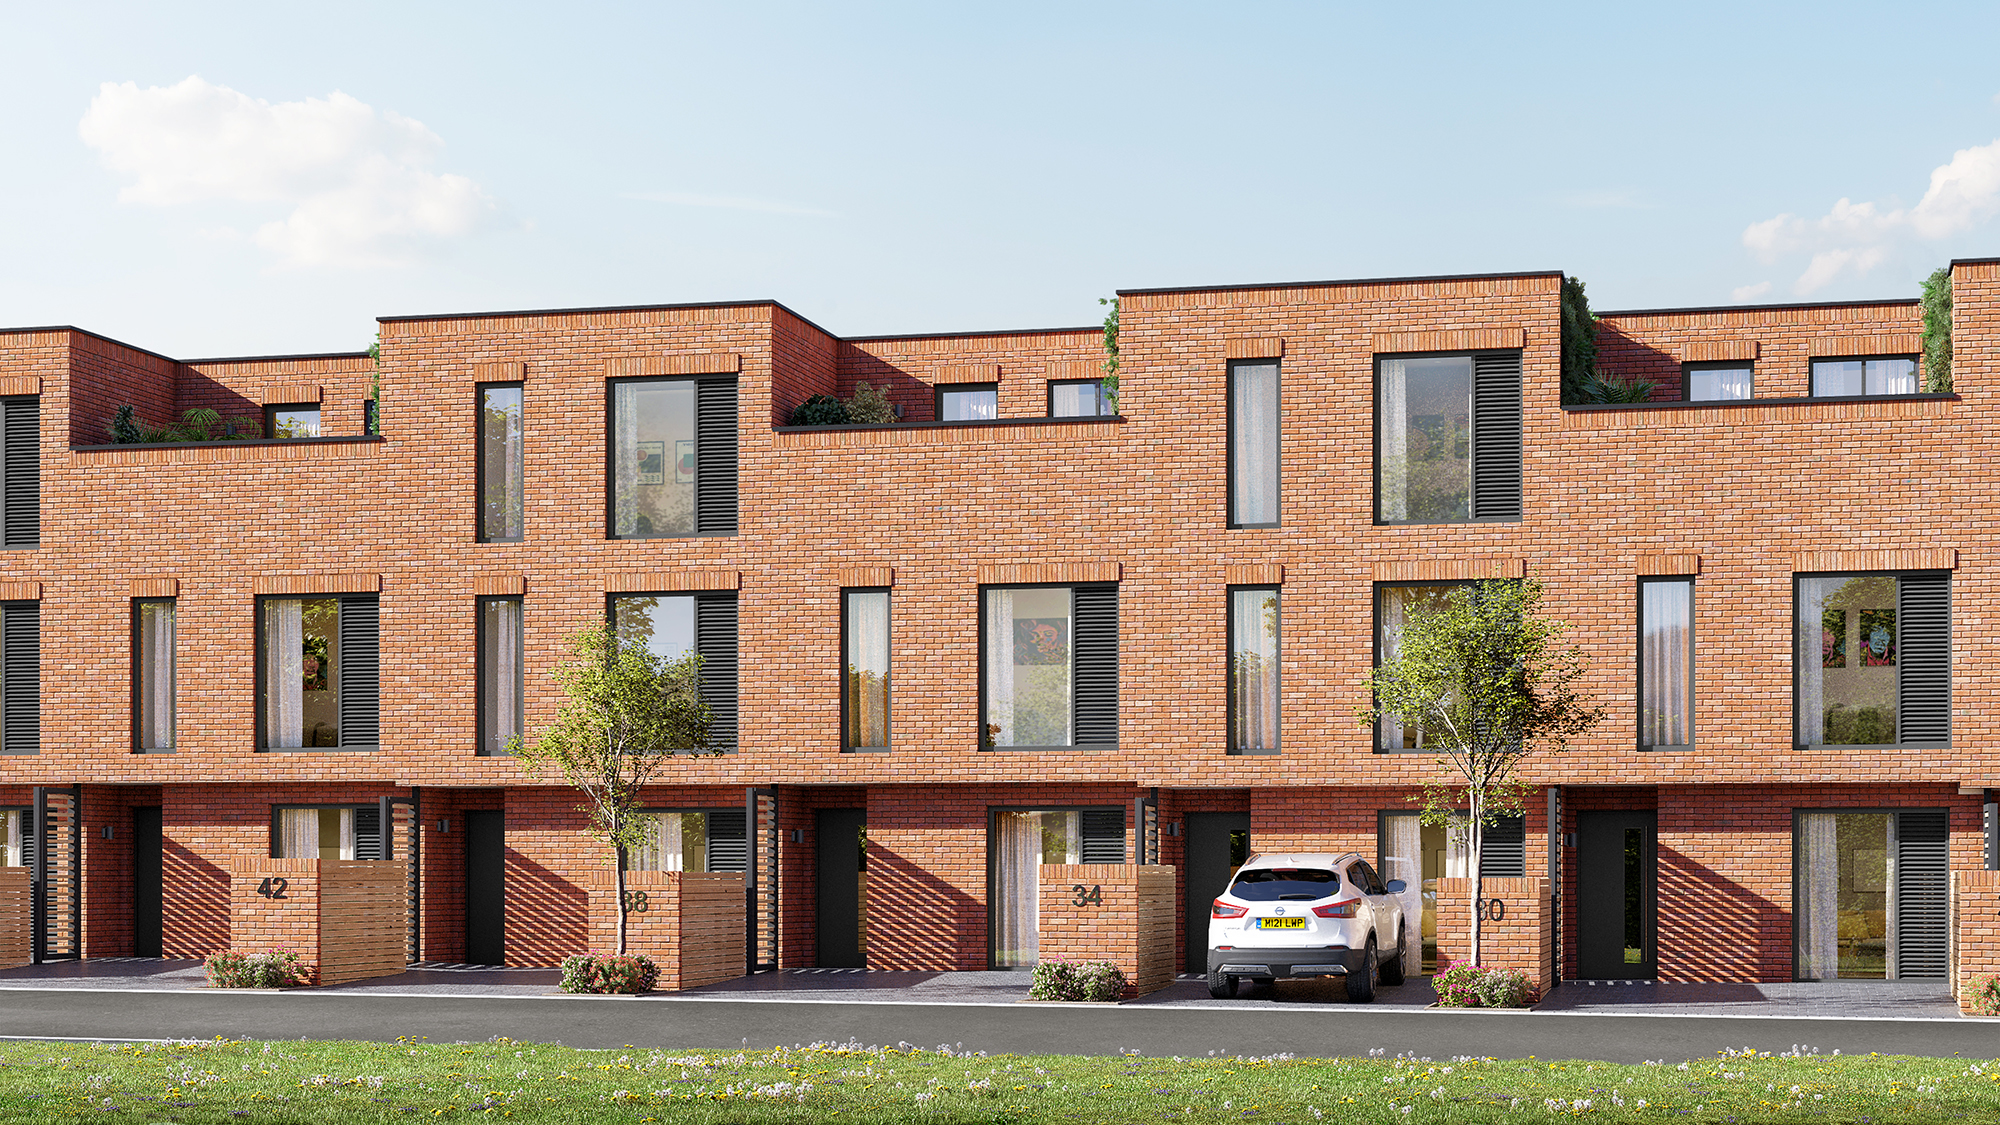 Work starts on 91 new homes in Salford